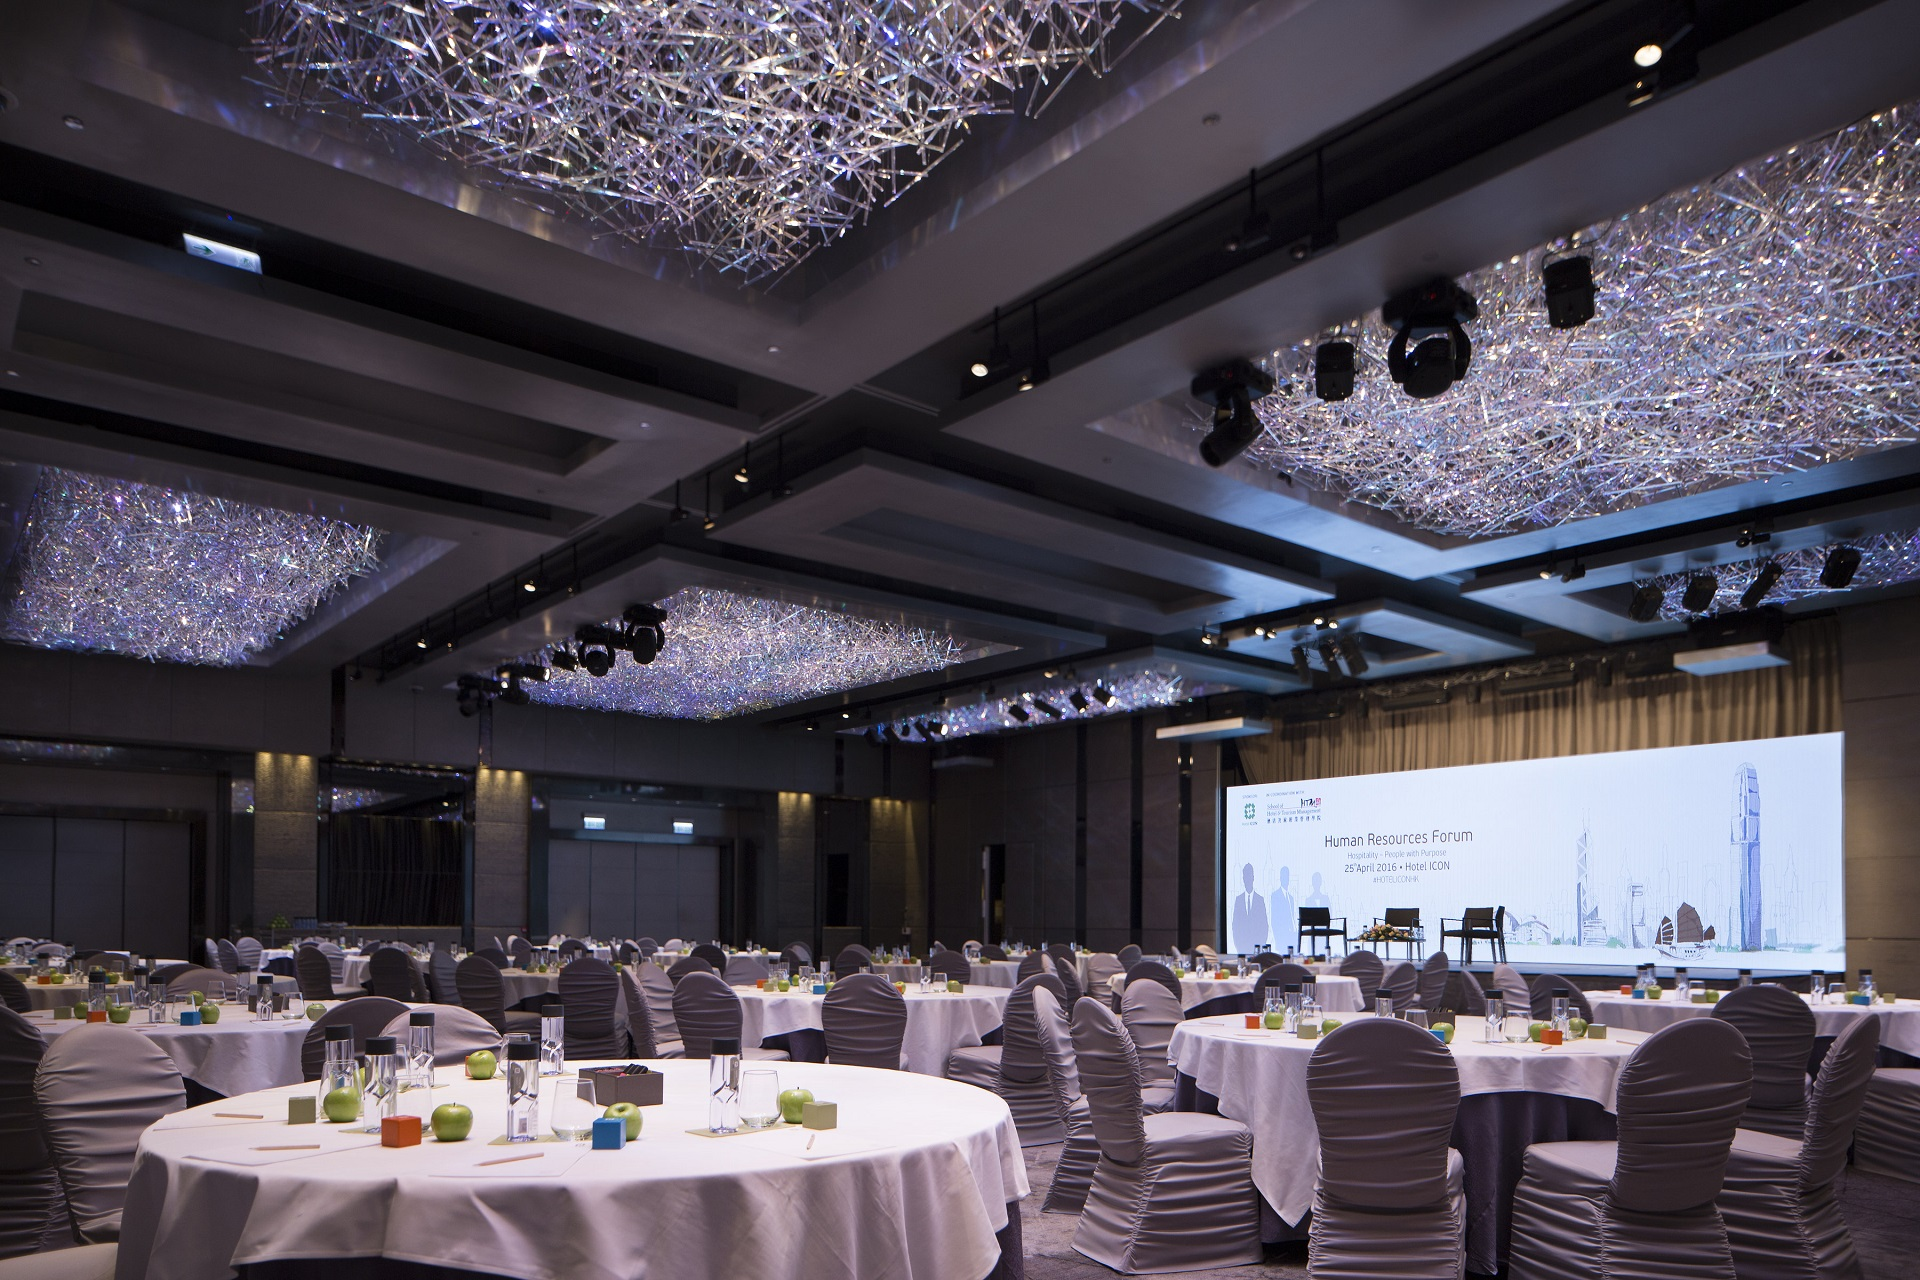 Ballroom of Hotel ICON - Hotel ICON's architectural design was performed by Hong Kong-based Rocco Design Architects Ltd., which was awarded the 2011 Hong Kong Institute of Architects Medal of the Year of Hong Kong for this work.